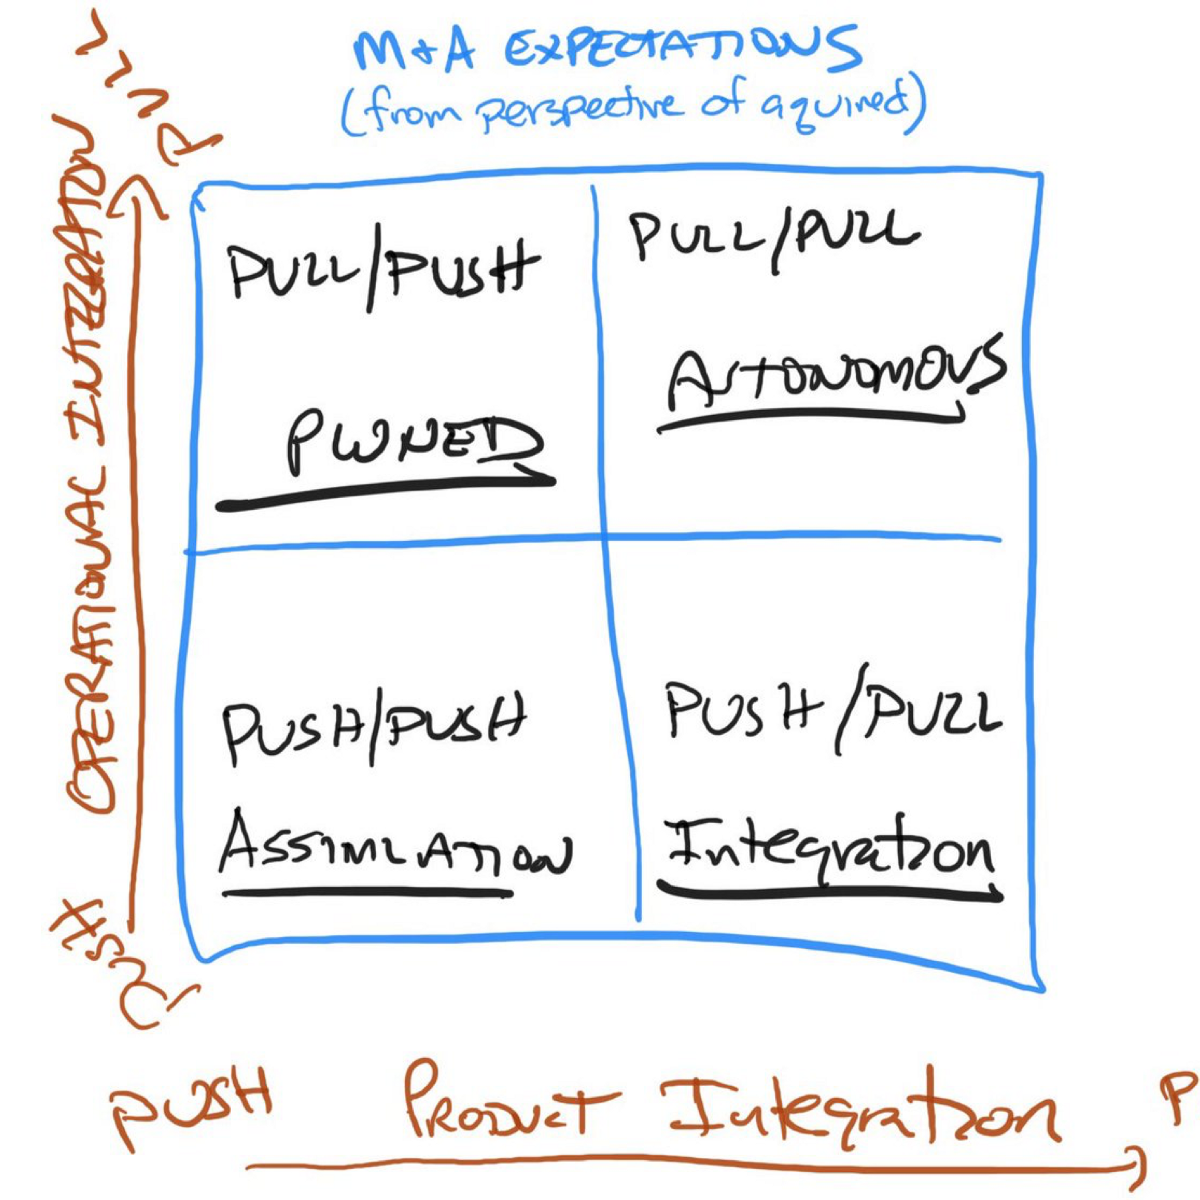 M&A: Expectations in Venture Integration - Learning By Shipping